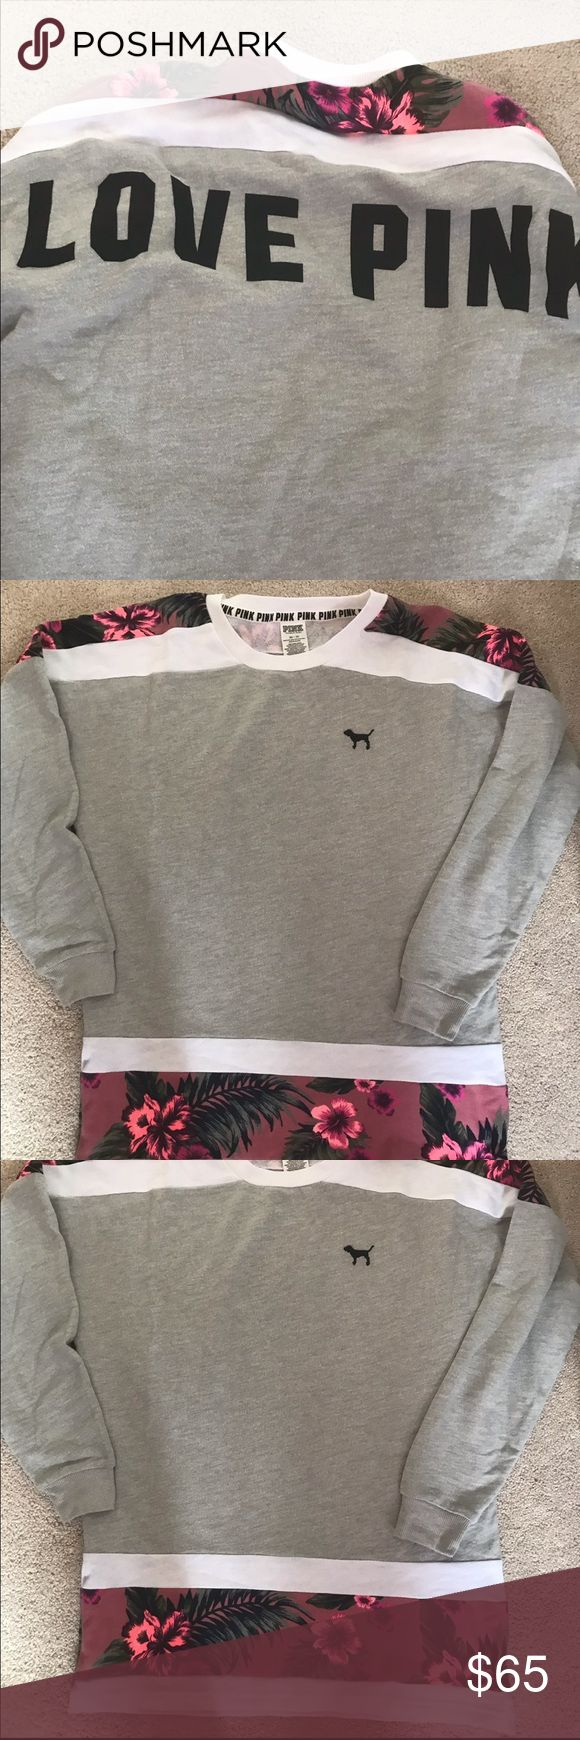 NEW VS PINK SLOUCHY CREW PULLOVER XS GREY FLORAL NEW VS PINK SLOUCHY CREW PULLOVER SZ XS LIGHT GREY WITH MULTICOLORED FLORAL DESIGNS. BACK HAS BLACK GRAPHICS READING PINK PINK Victoria's Secret Tops Sweatshirts & Hoodies